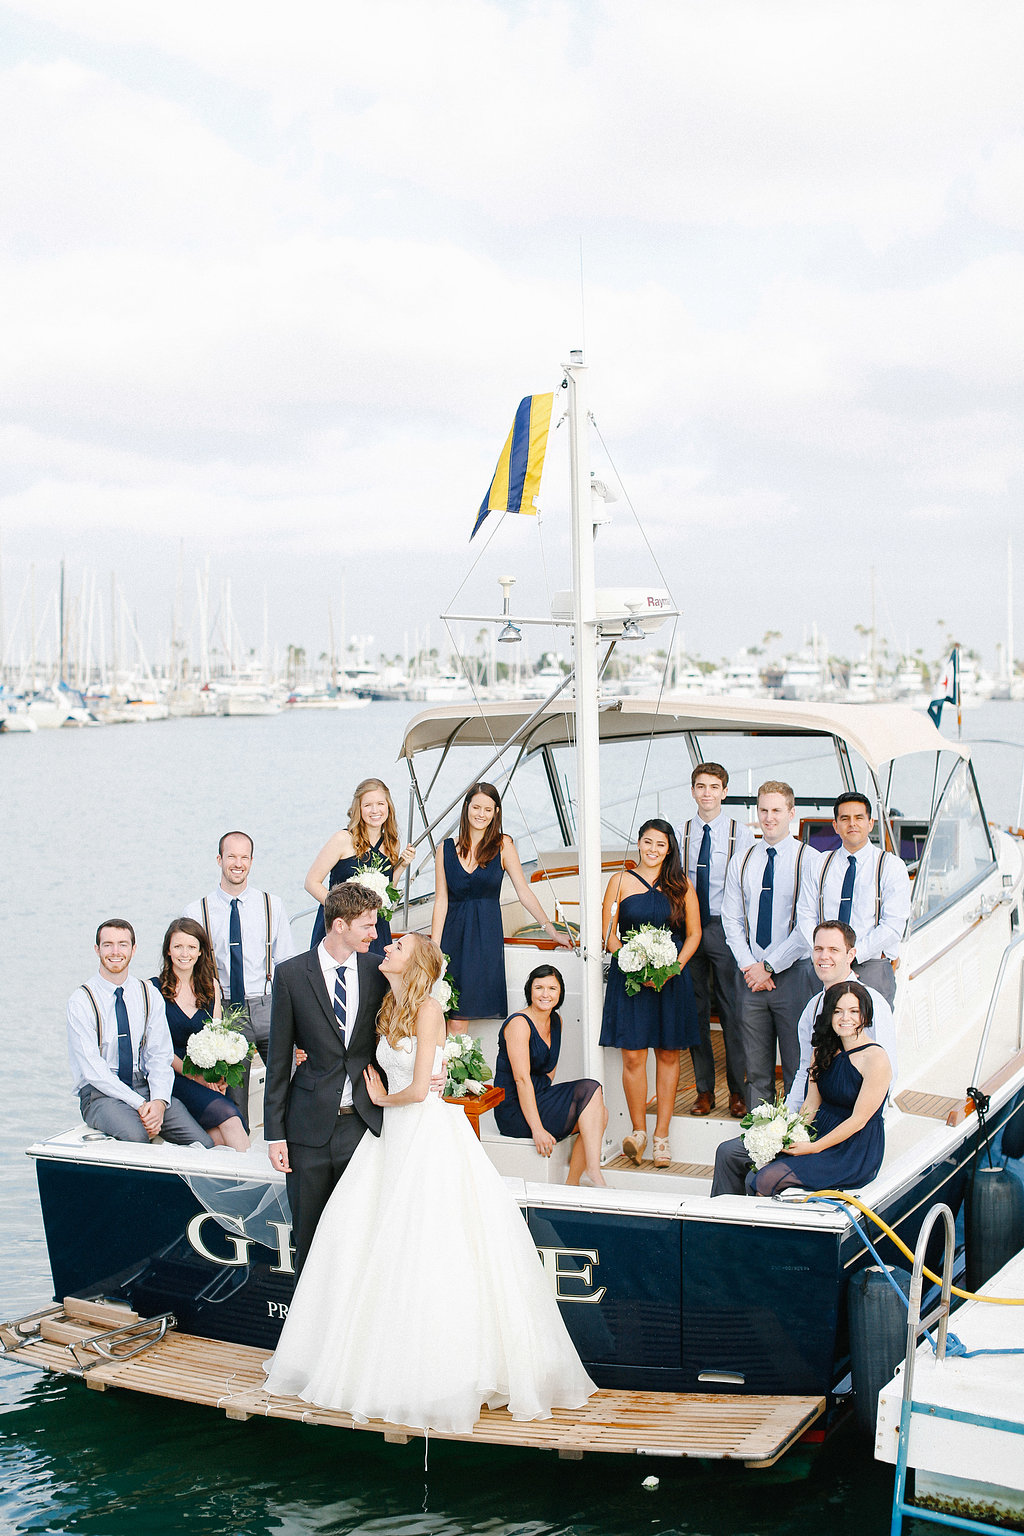 chic vehicles and more modes of transportation for your wedding